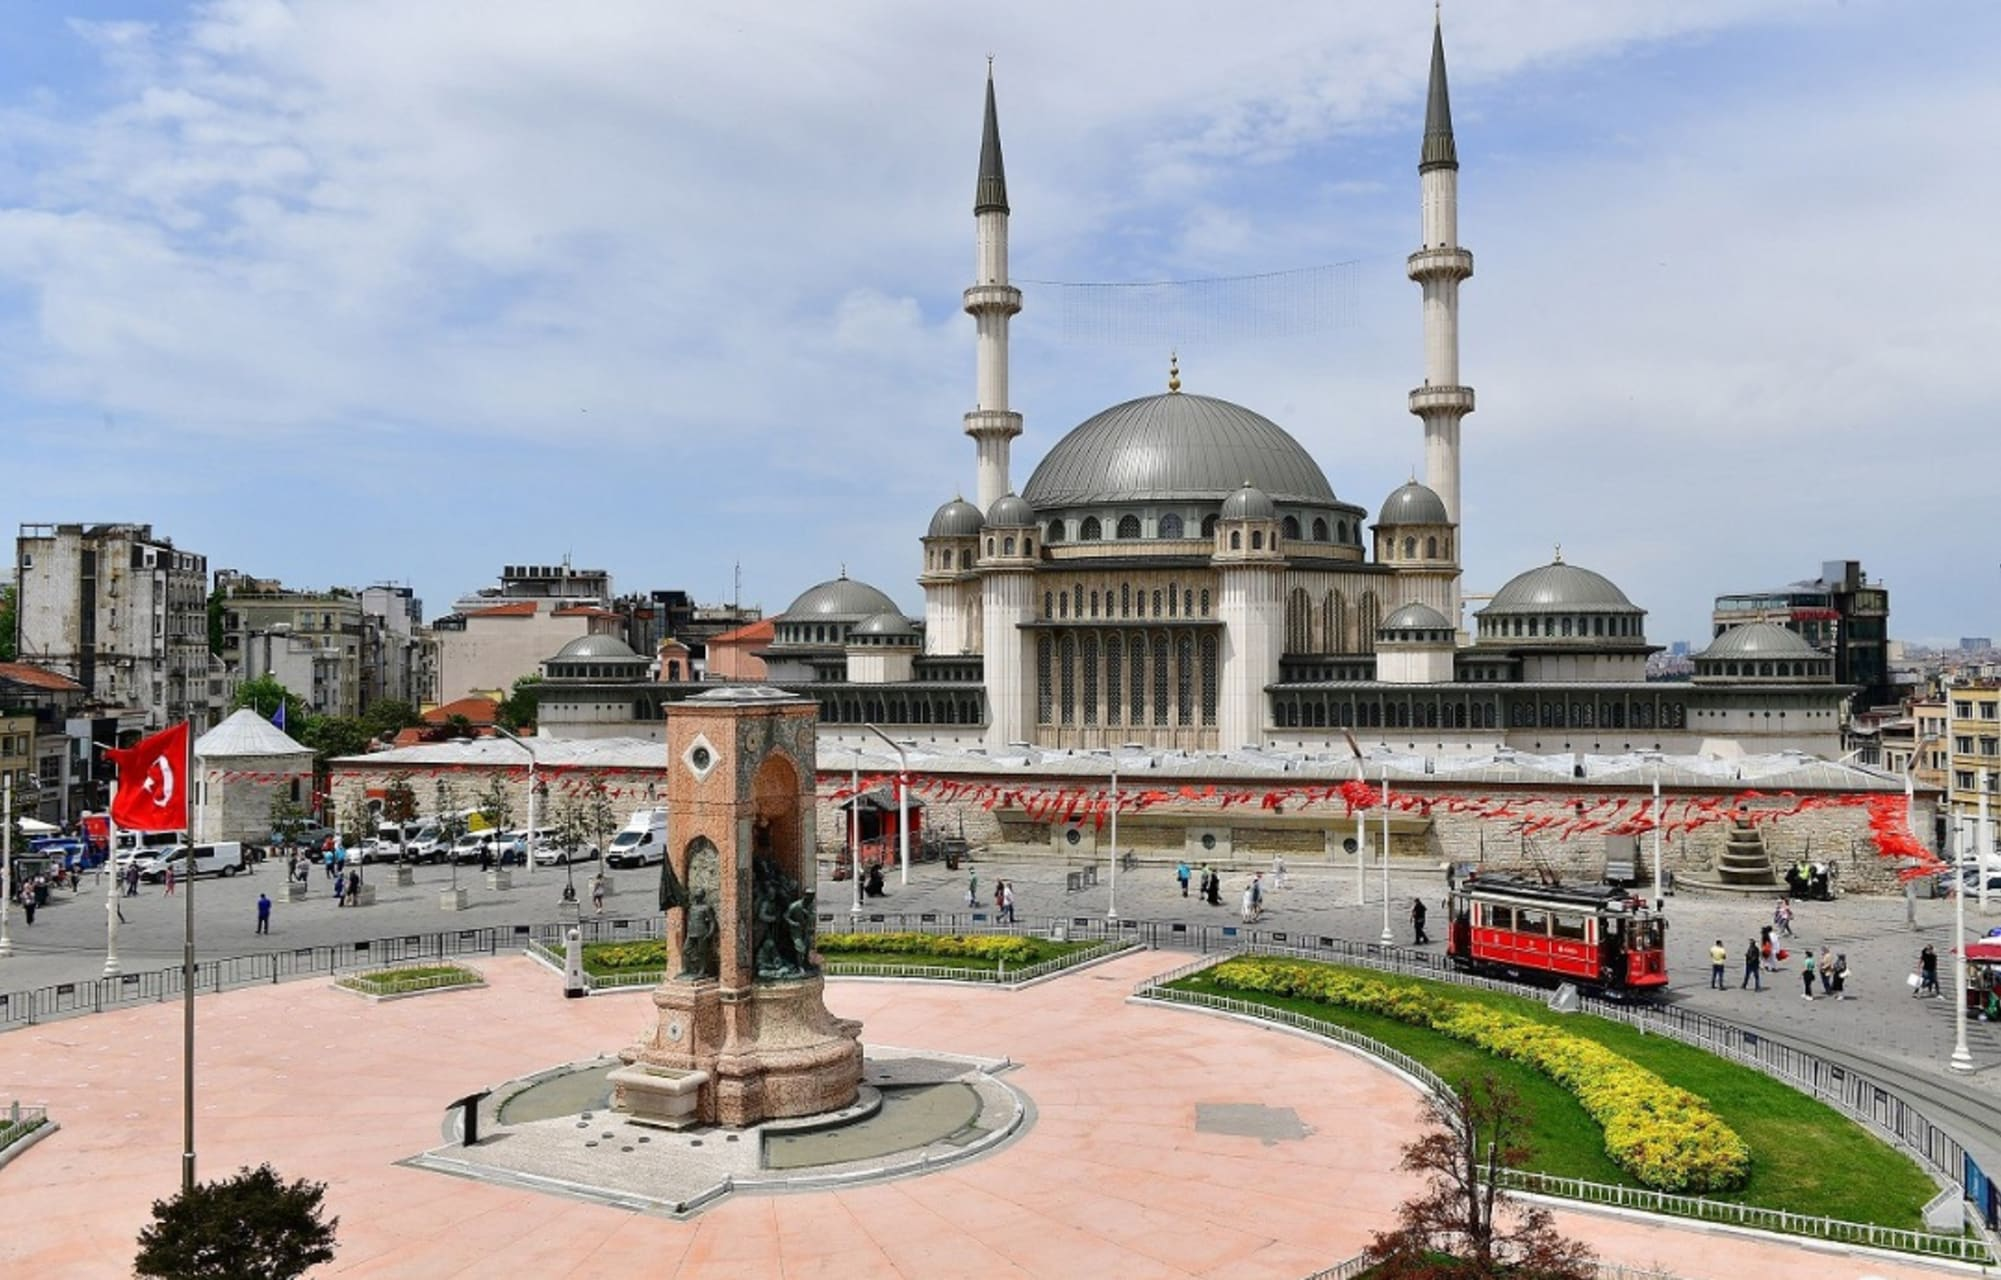 Istanbul - Taksim square, an old place and the center of a modern city